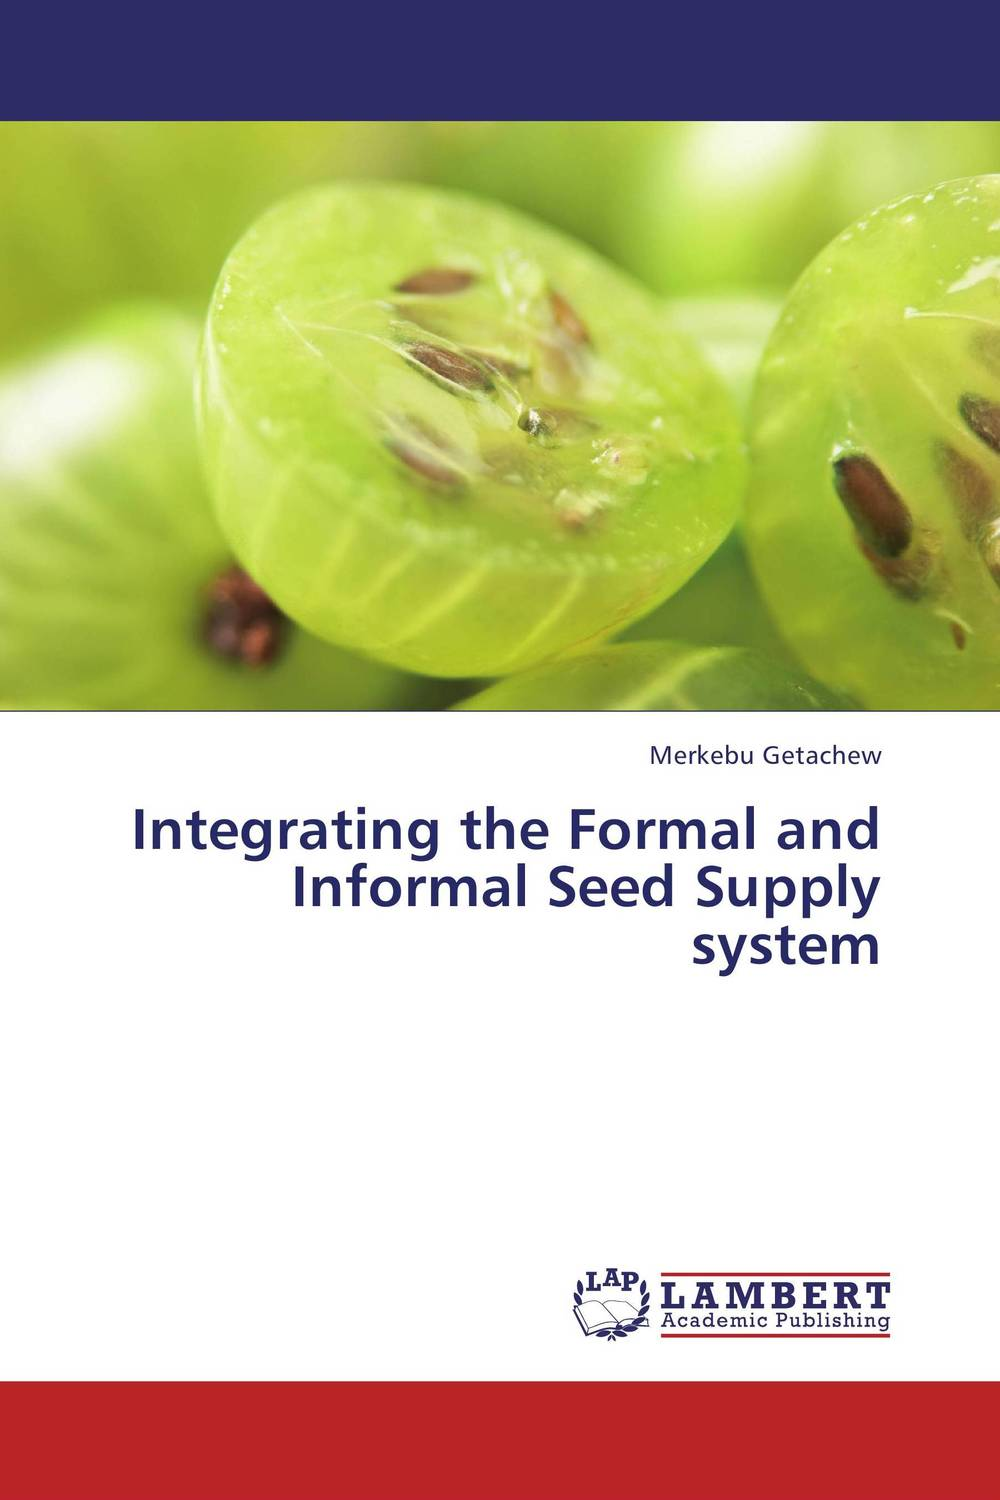 Integrating the Formal and Informal Seed Supply system seed dormancy and germination